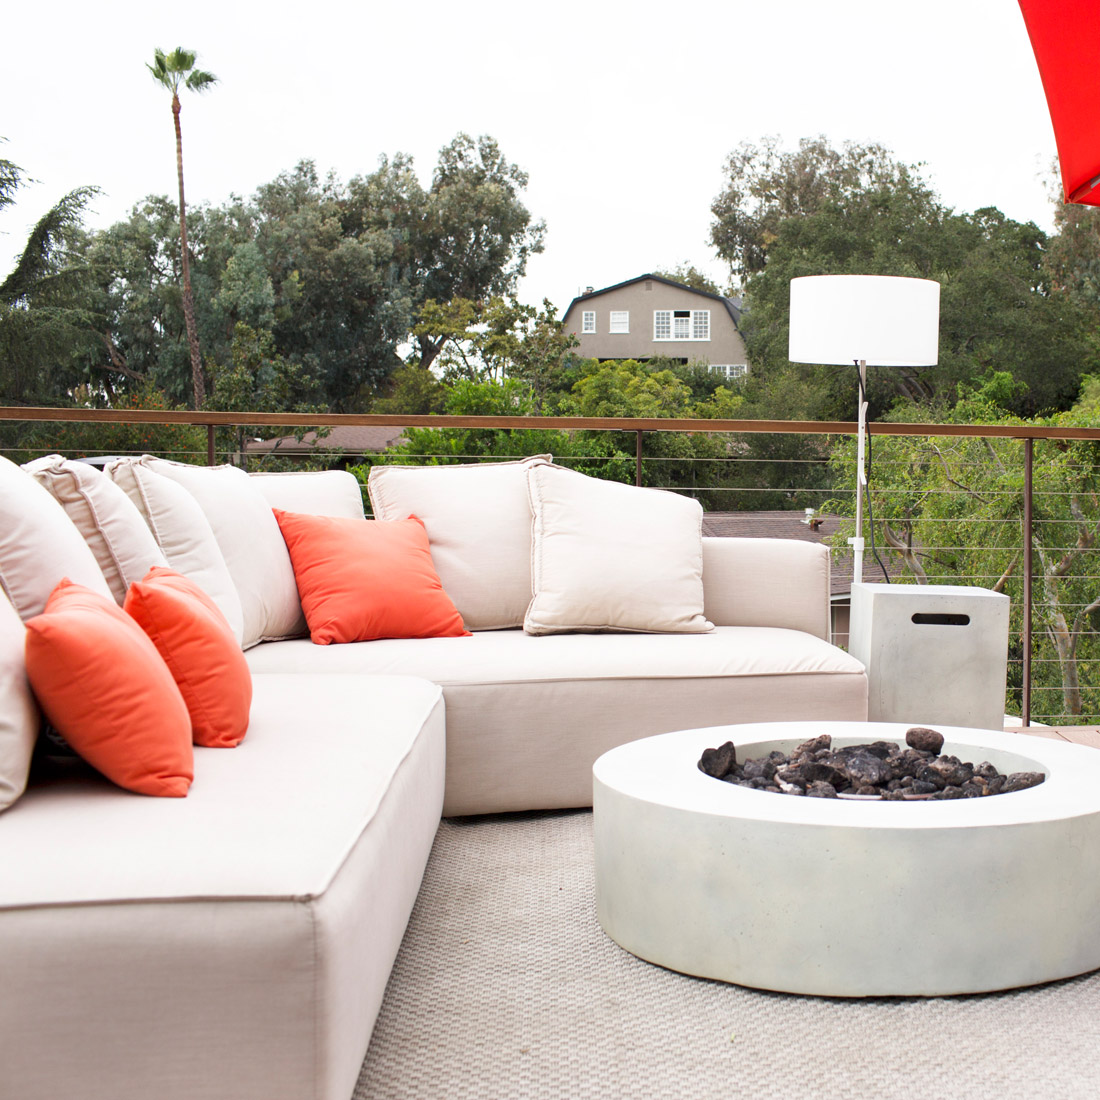 modern outdoor lounge sectional sofa with orange accents and floor lamp around a gas concrete fireplace on roof deck design by sara bates interior design